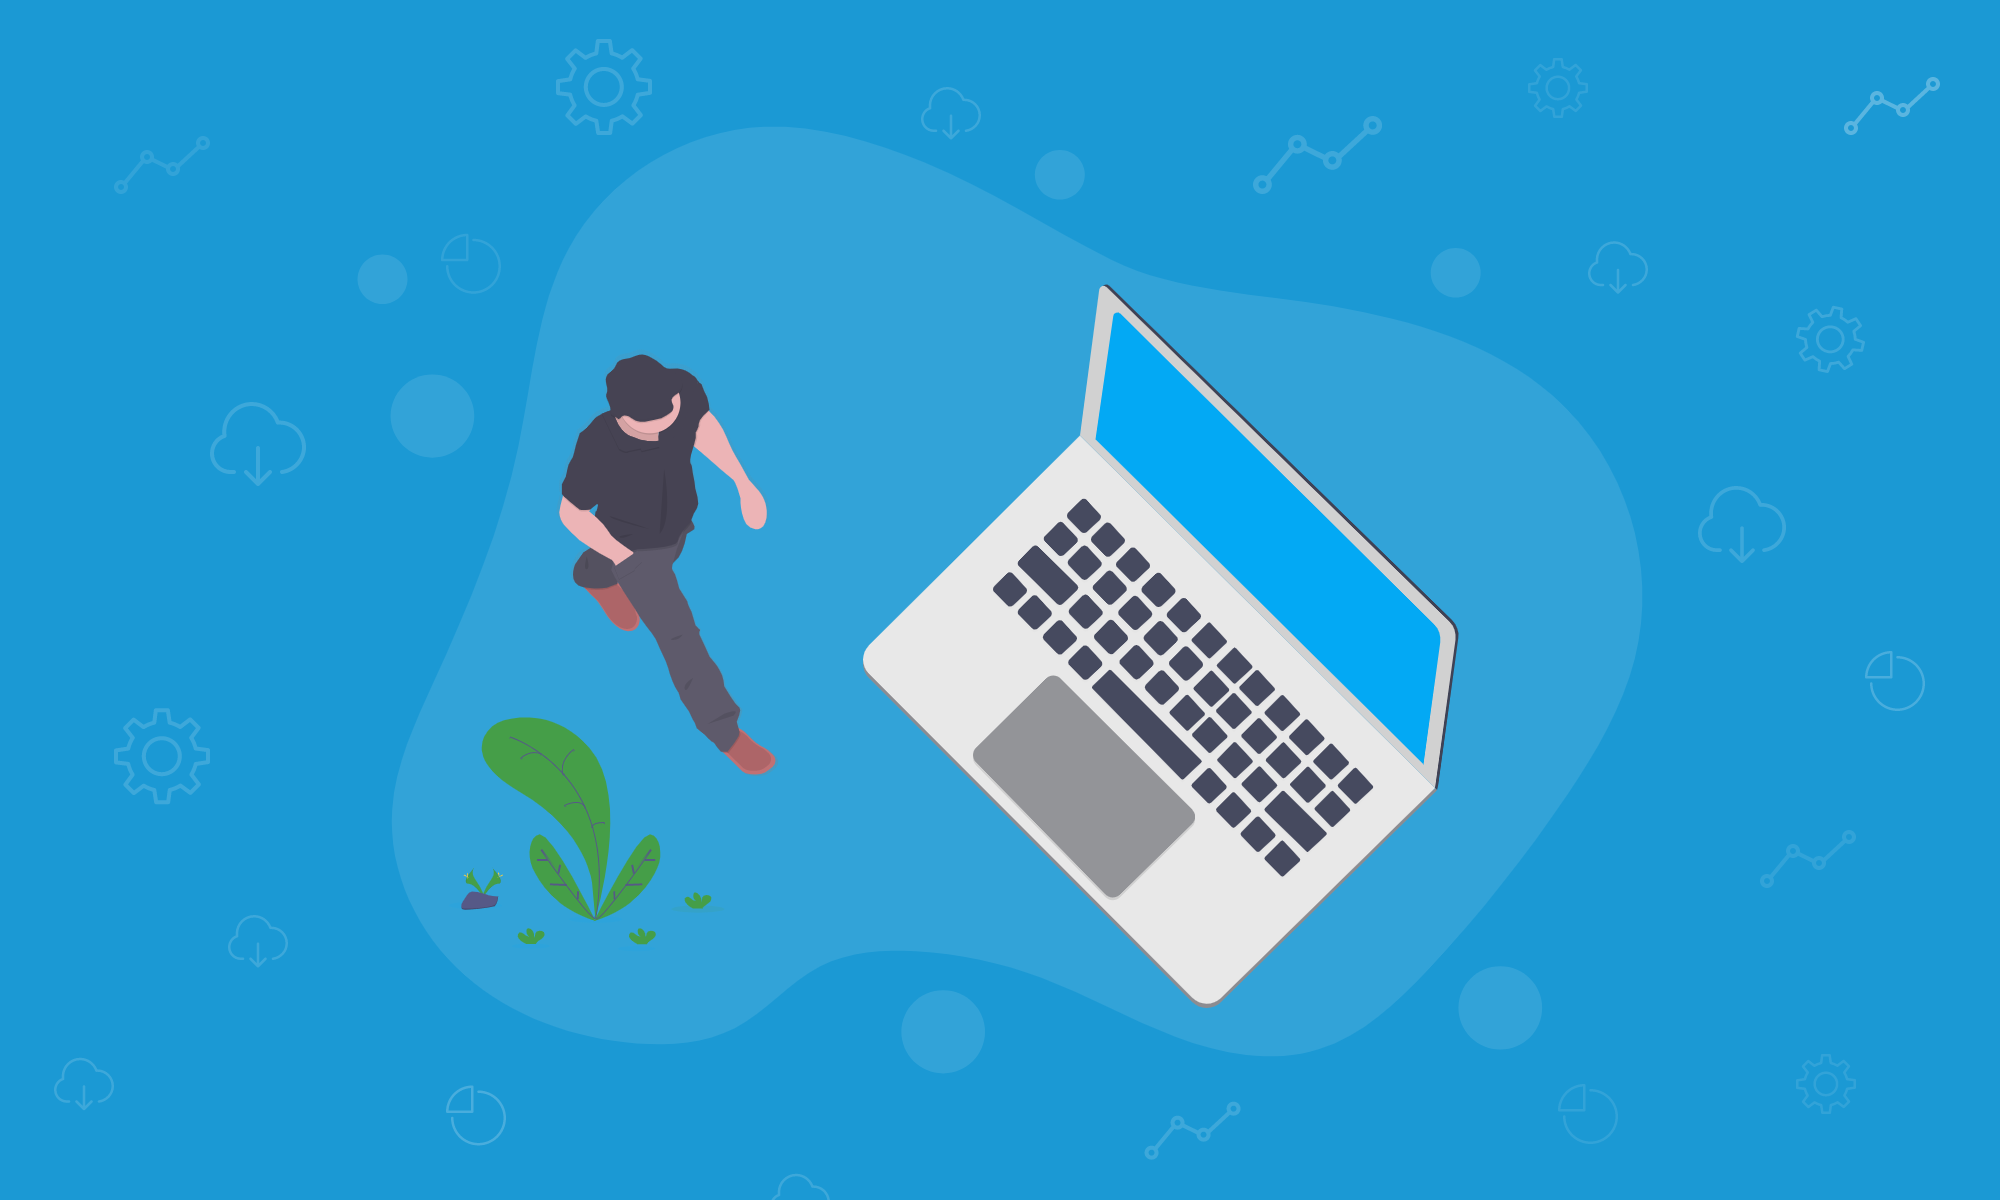 Vector illustration of man walking towards a laptop to demonstrate The Profit Points of Business Startups